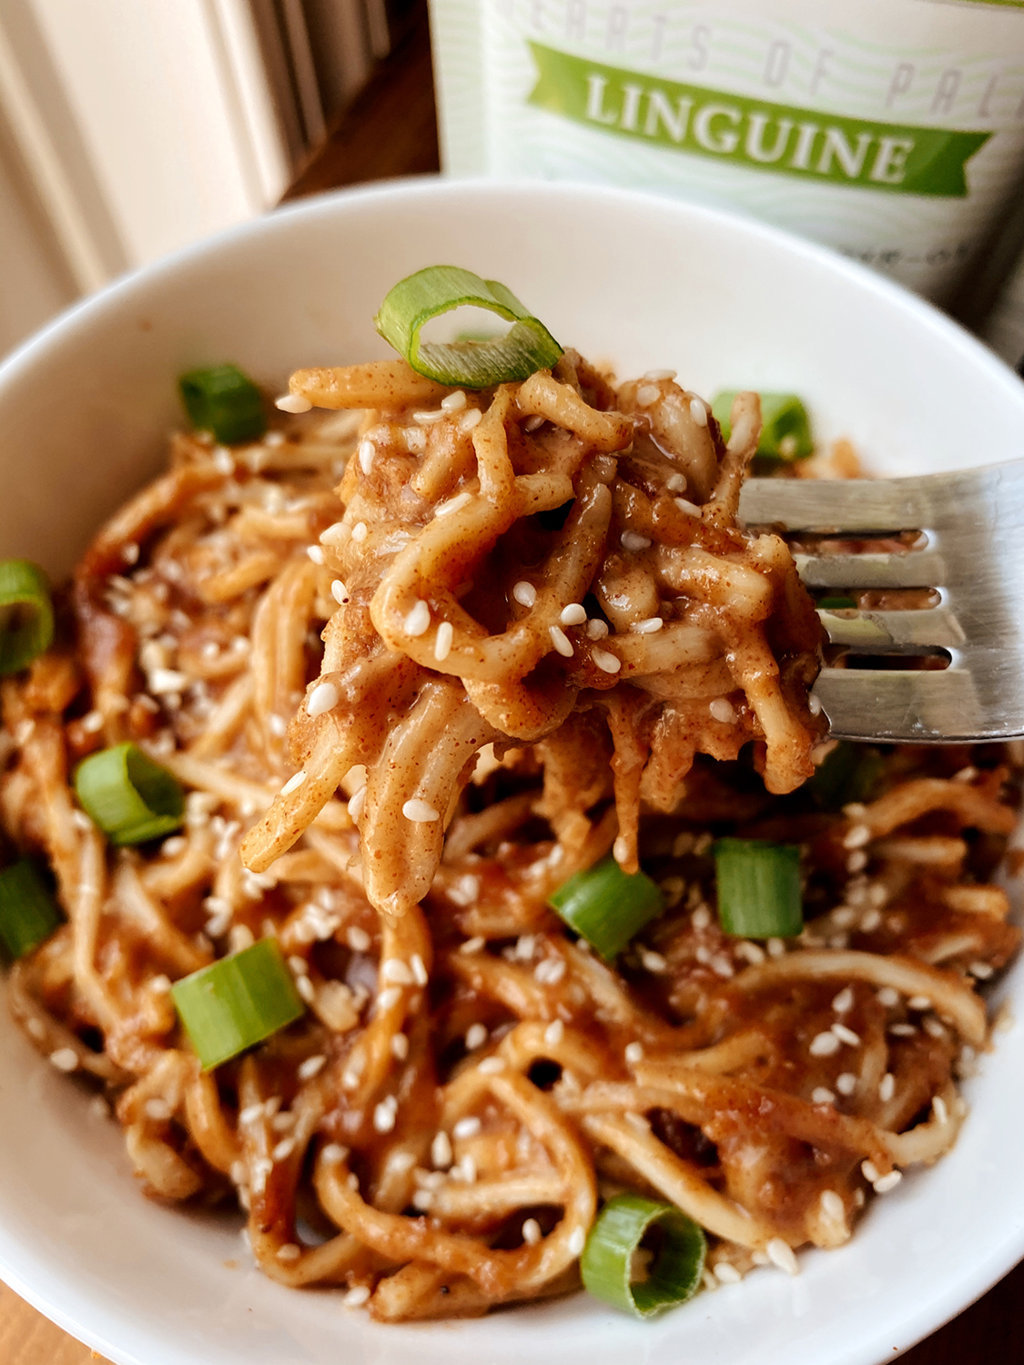 Almond-Butter-and-Sesame-Palmini-Noodles.jpg